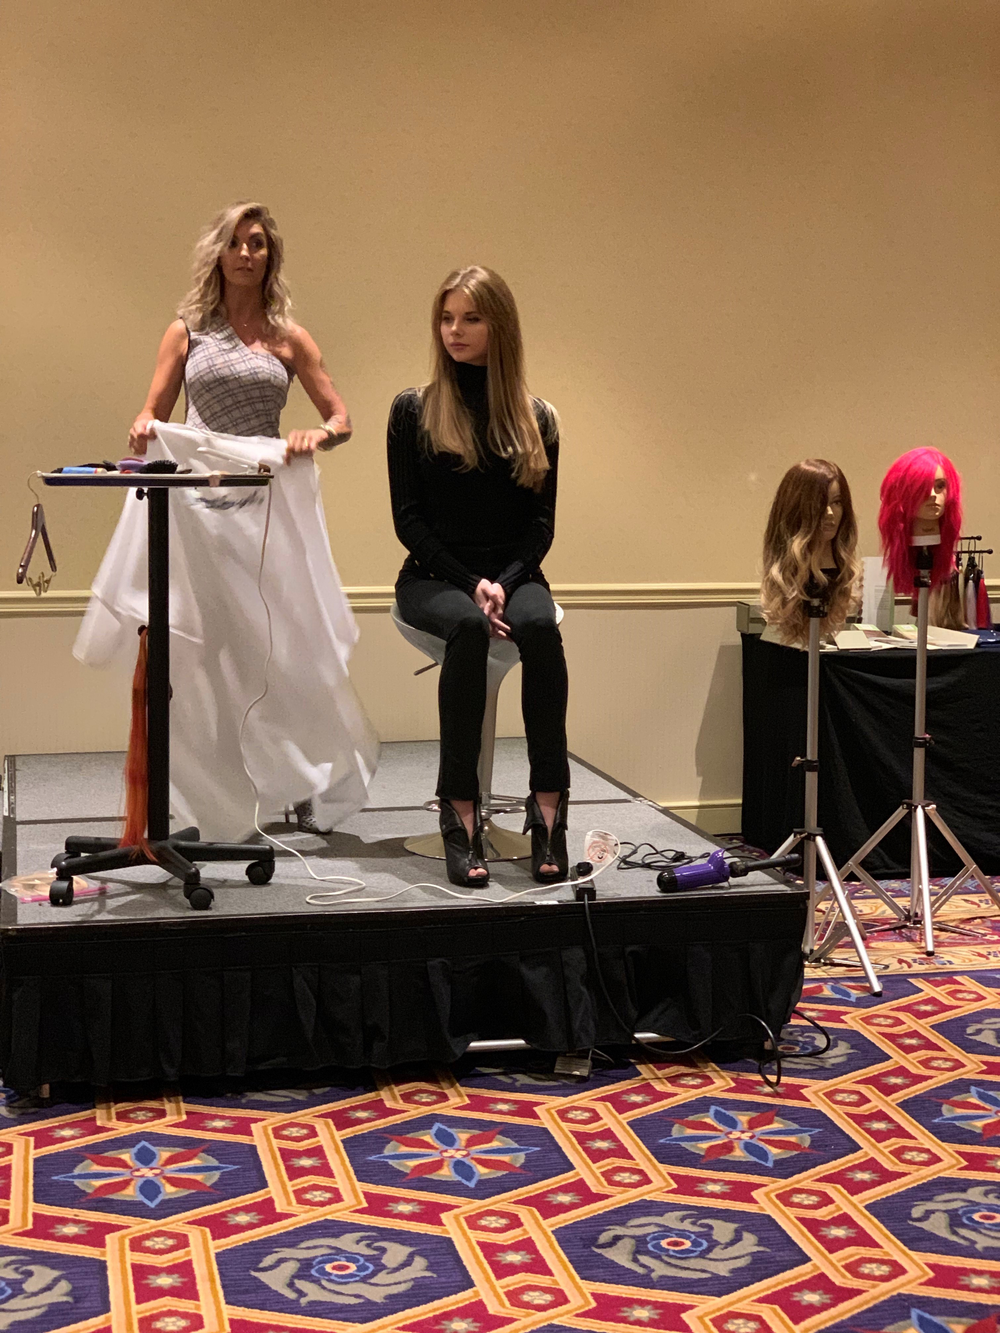 NAHA 2018 Hairstylist of the Year and Great Lengths USA Executive Artistic Director Danielle Keasling begins her tape-in tutorial.